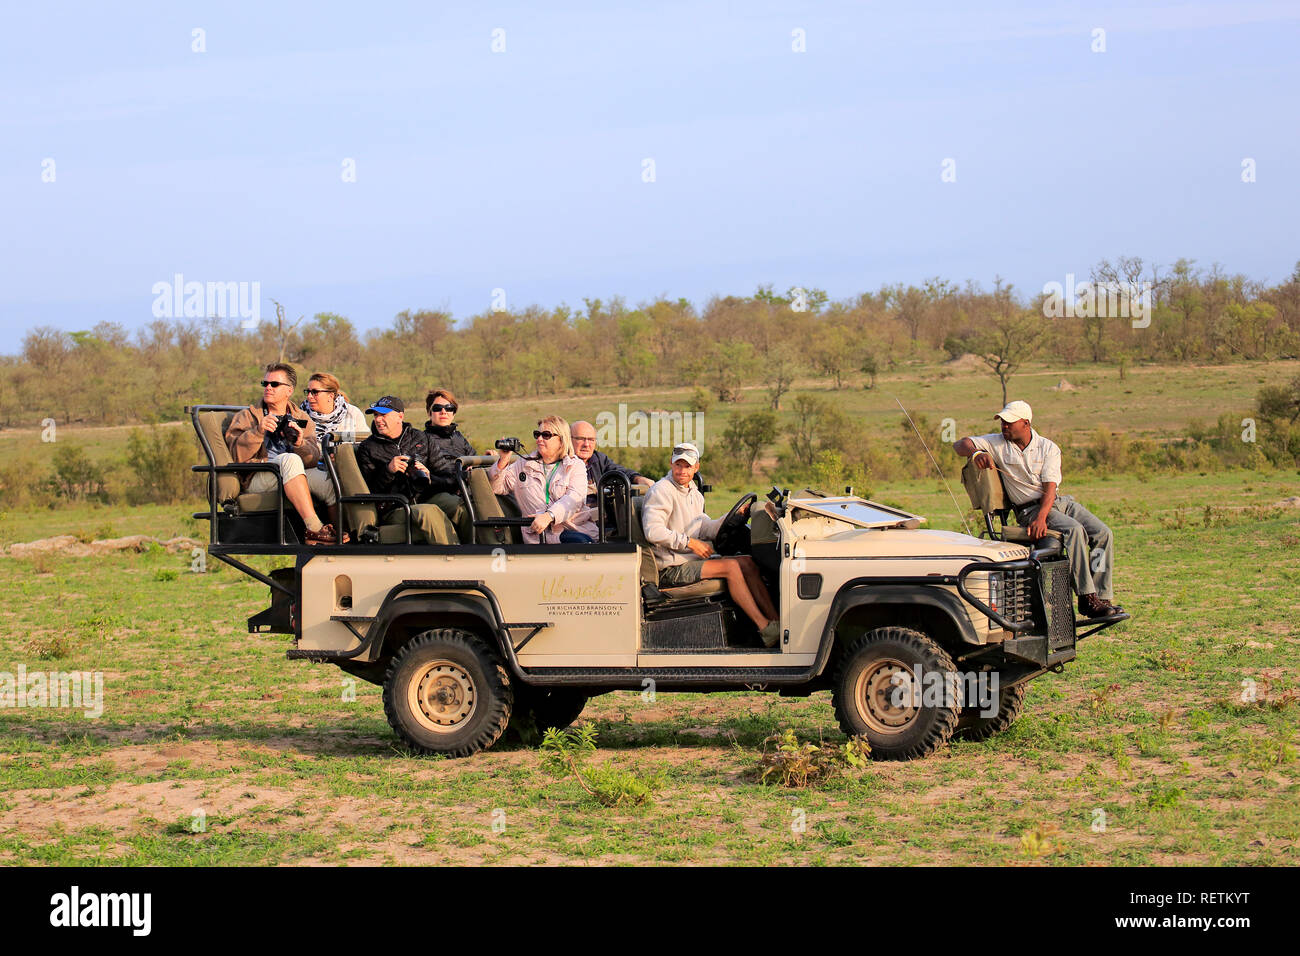 Safari vehicle, Private Game drive with tourists in Safari Vehicle, Sabi Sand Game Reserve, Kruger Nationalpark,South Africa, Africa - Stock Image